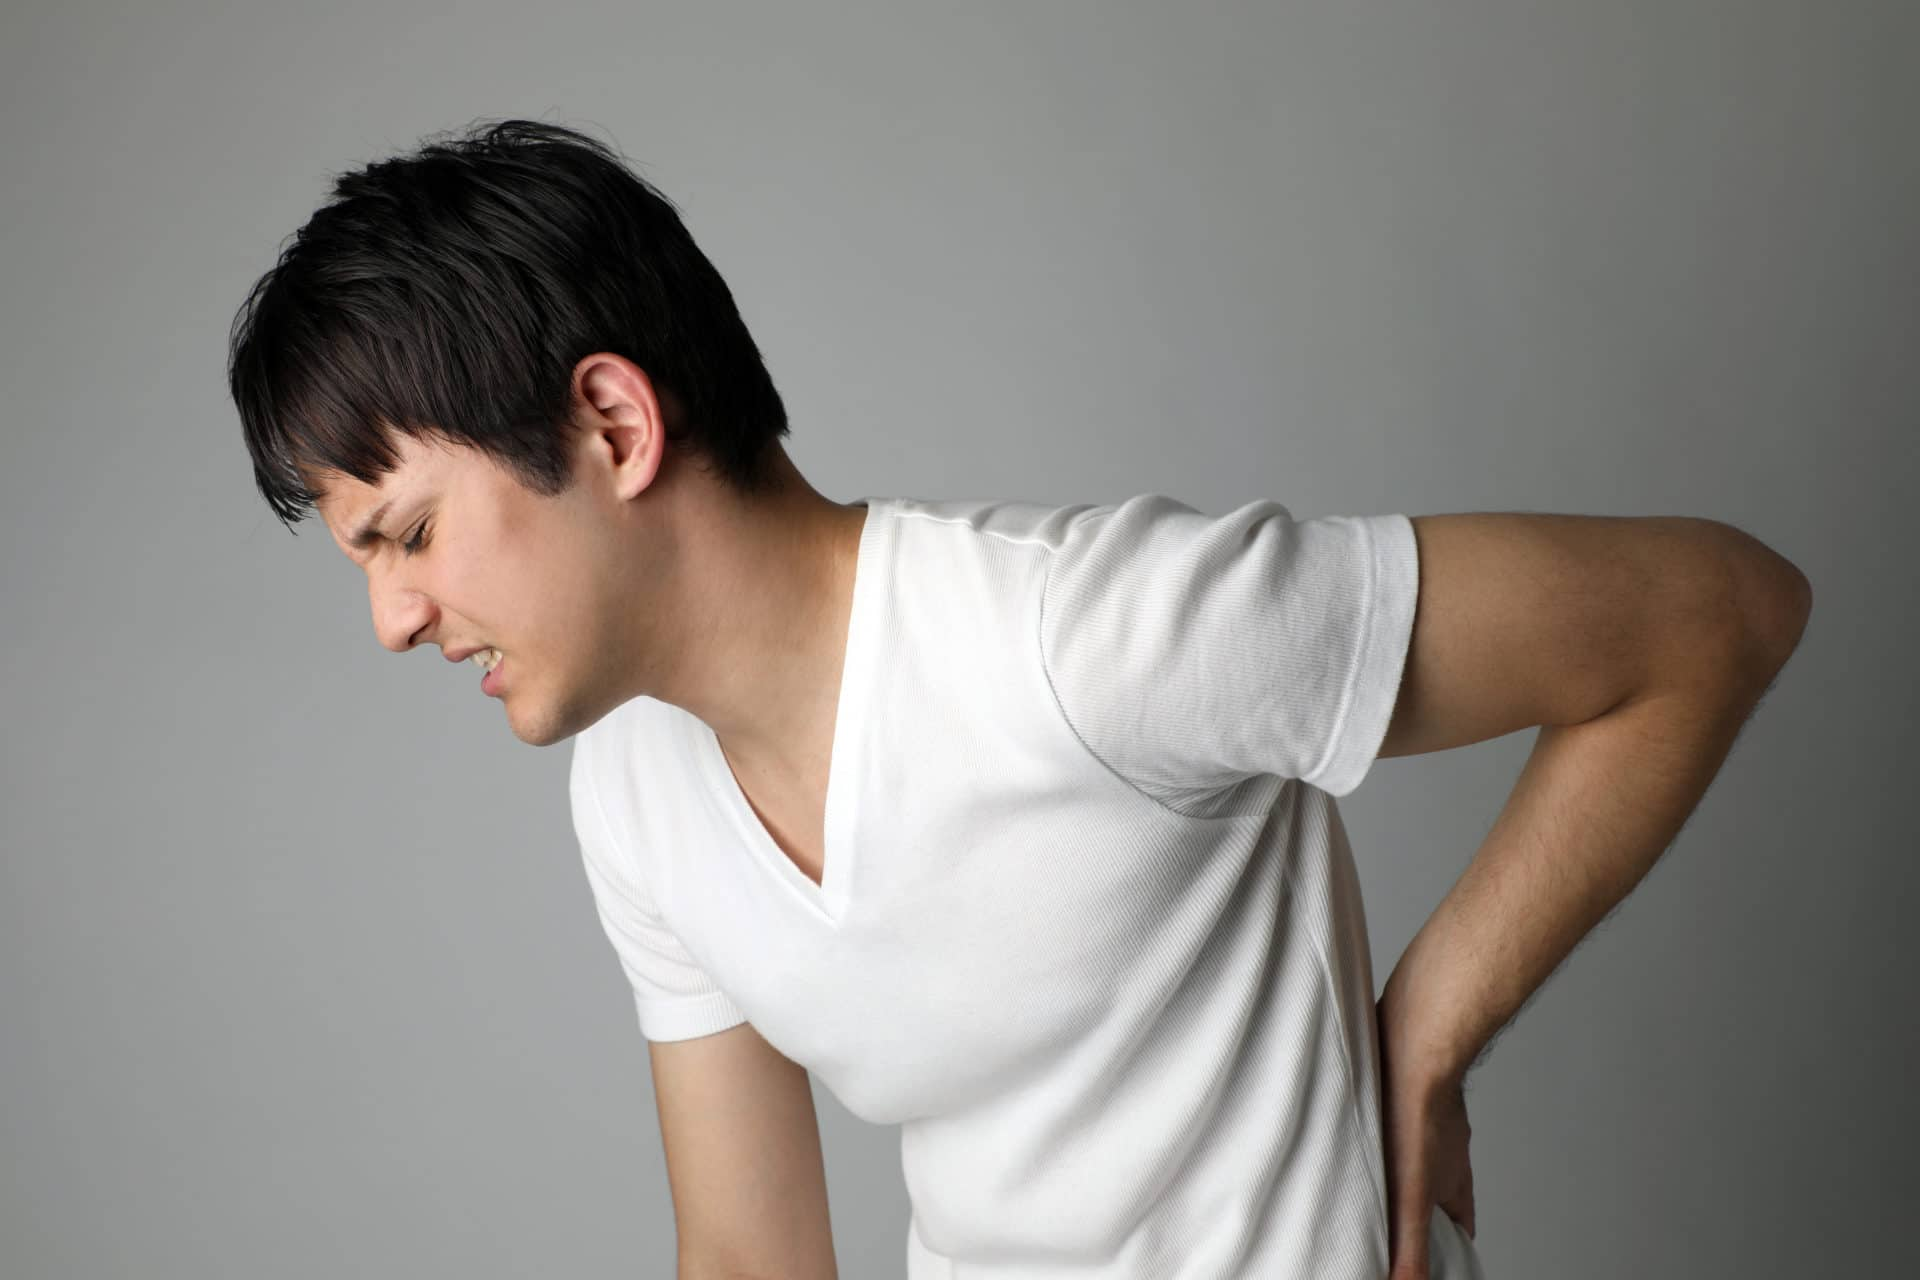 Lower-back pain symptoms